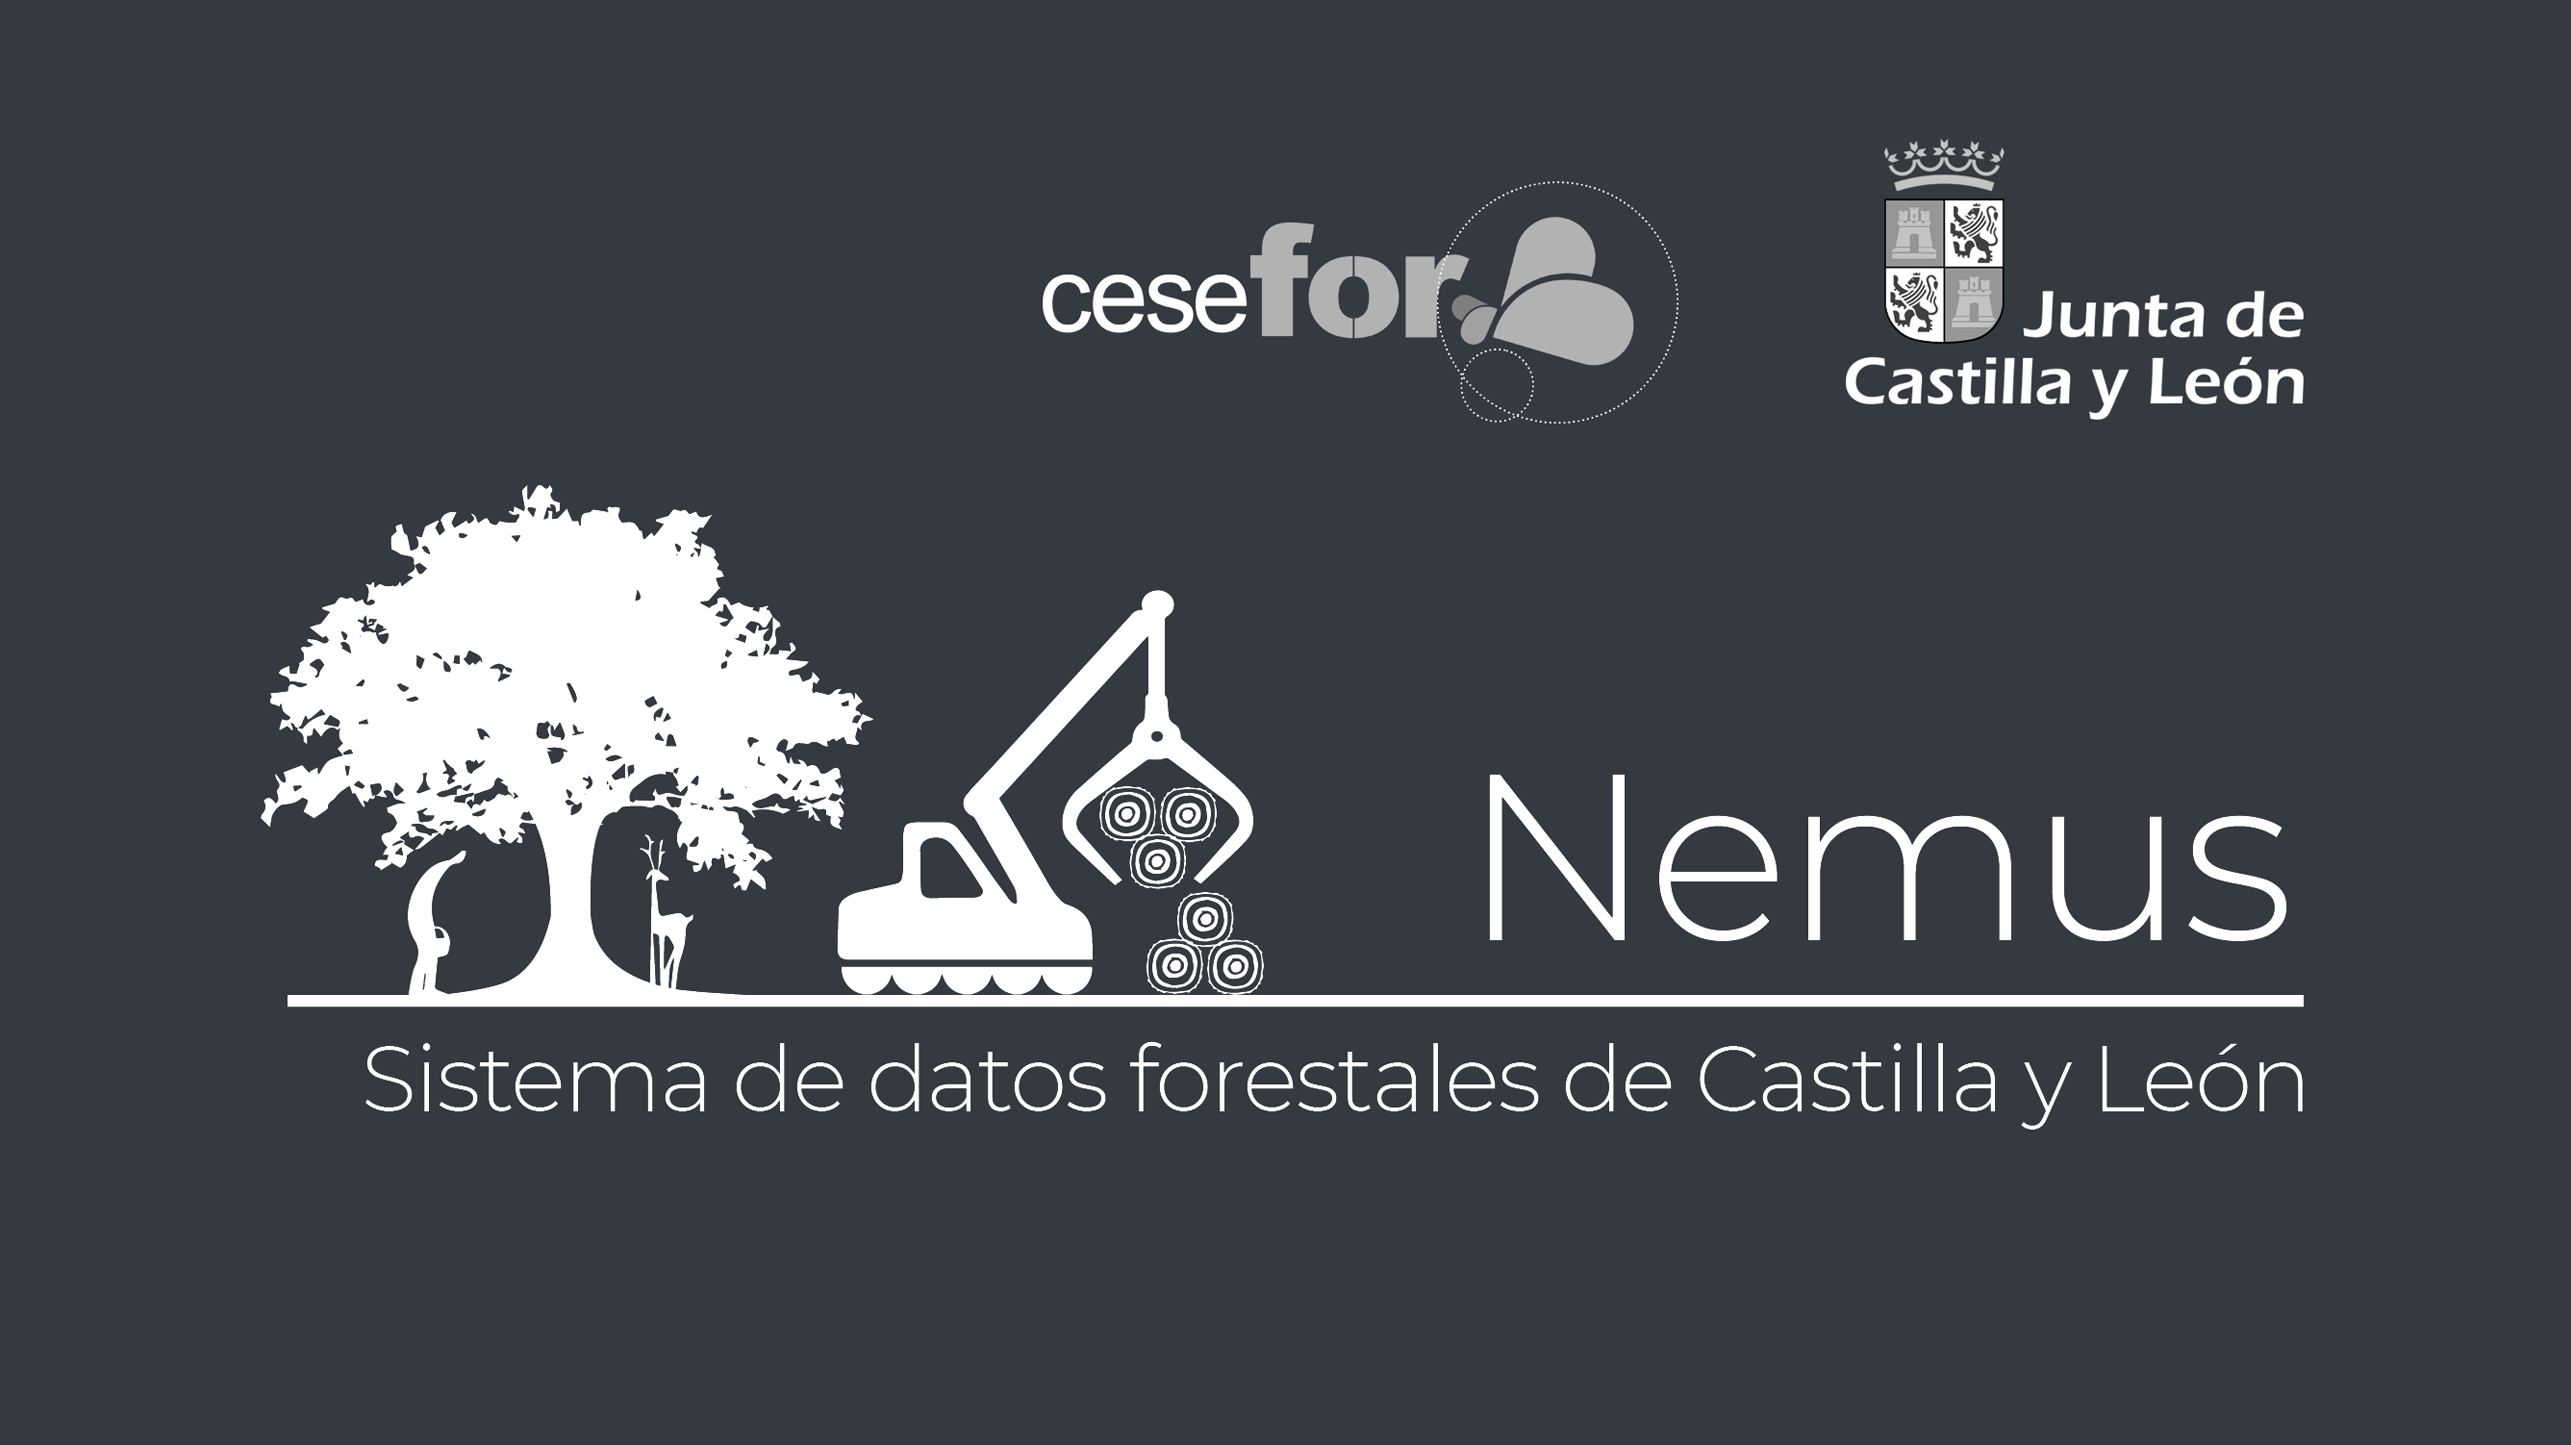 Nemus forestry data visualization system created by Cesefor in cooperation with Regional Government of Castile and Leon